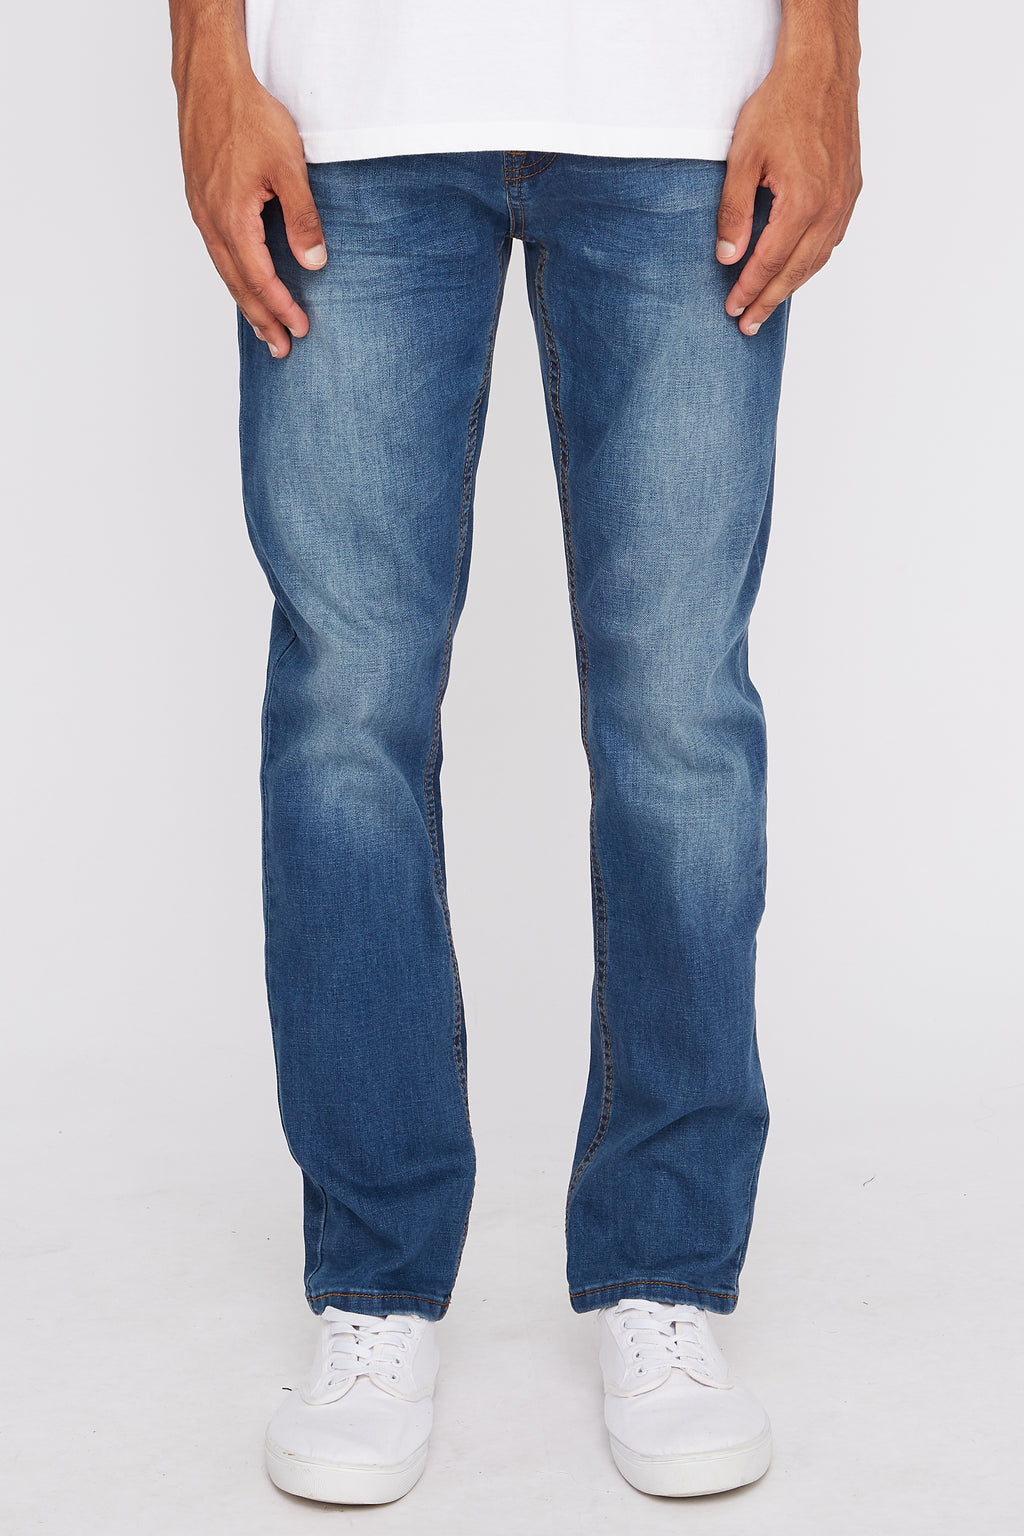 West49 Mens Medium Wash Stretch Slim Jeans